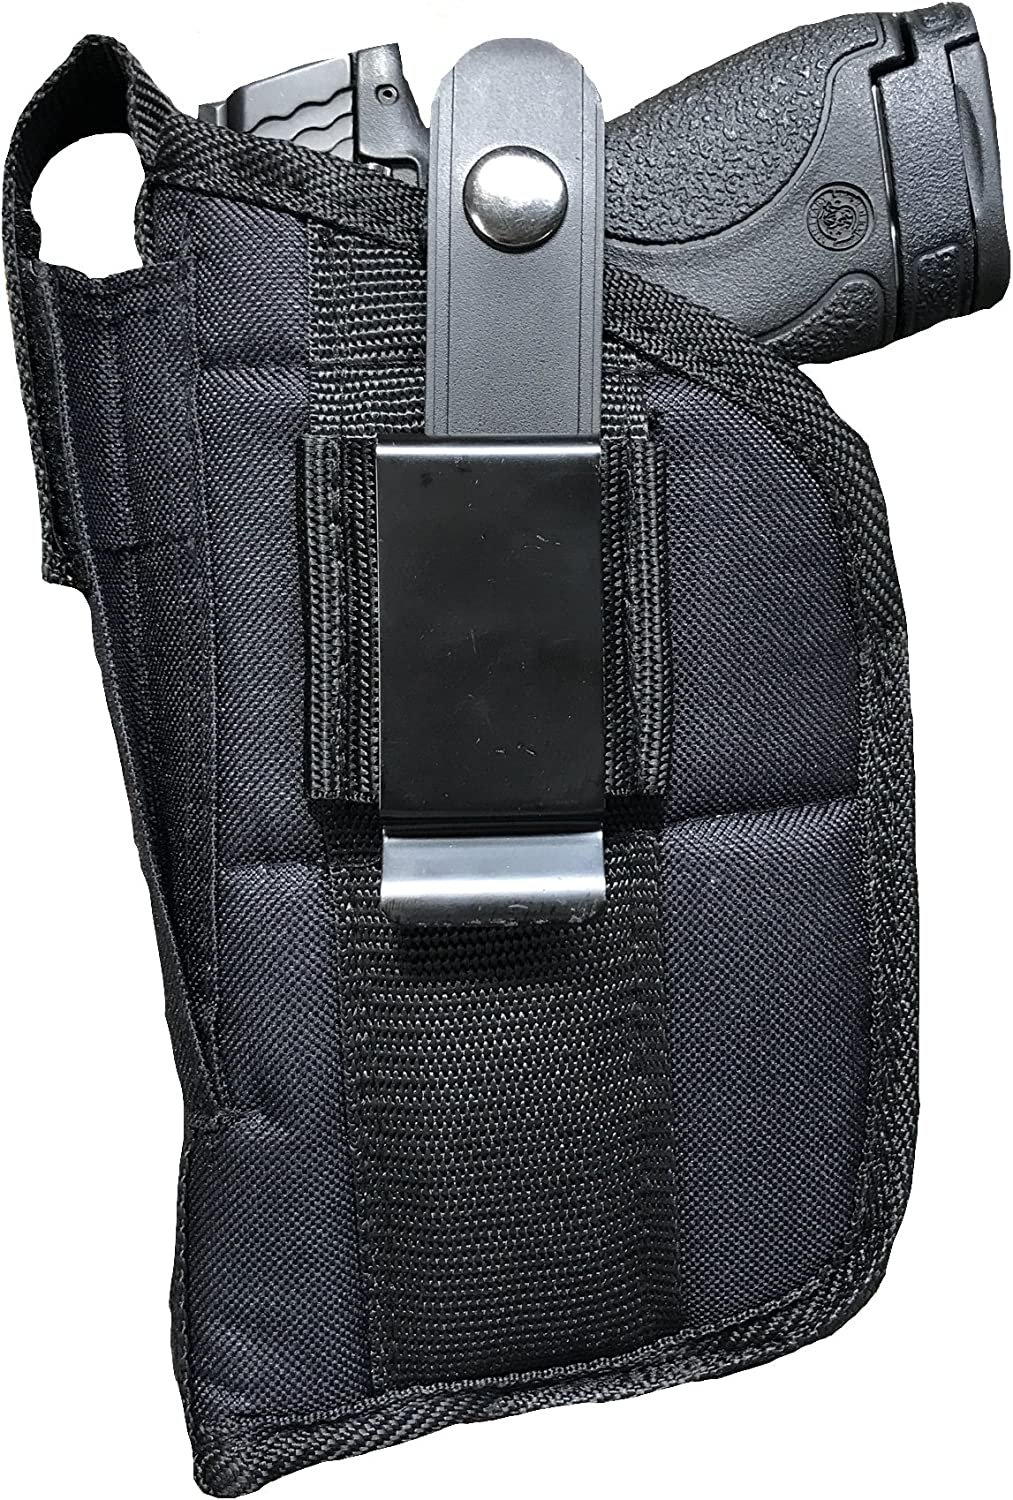 Nylon Belt or Clip on Gun Fits Holster PPQ Fashionable Walther Memphis Mall SP-22 P-99